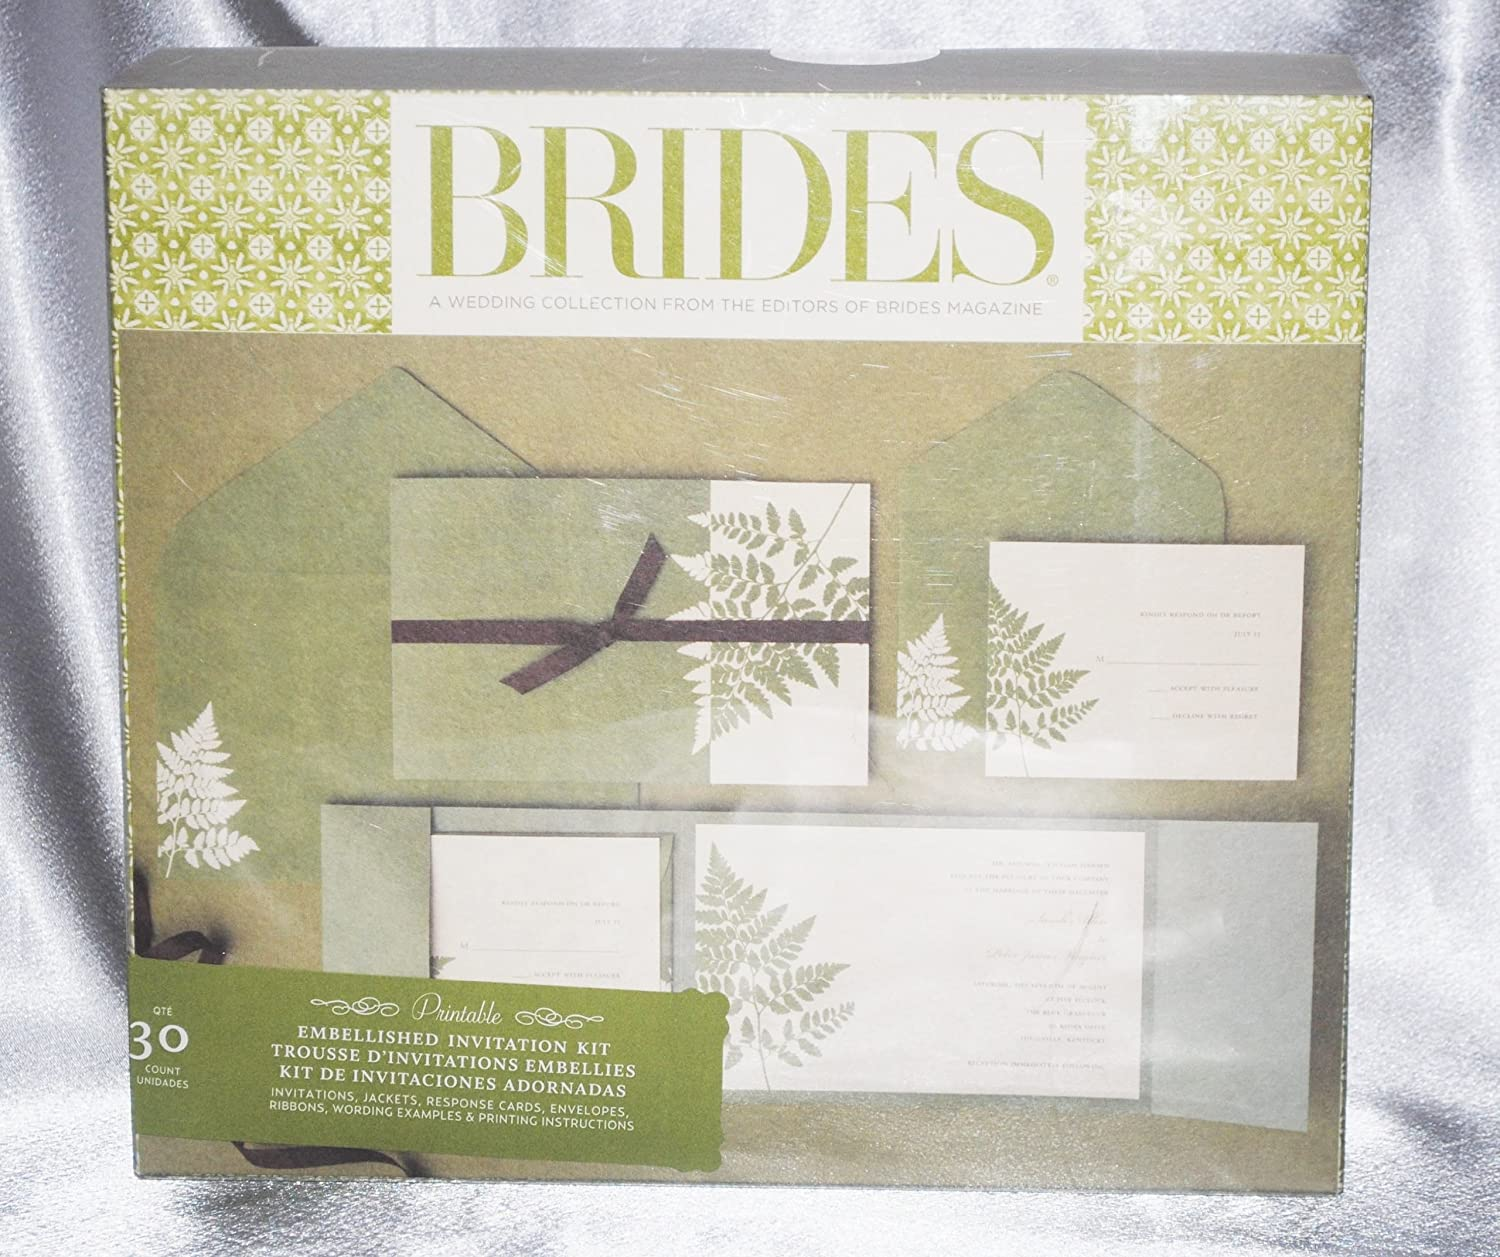 brides magazine wedding invitation kit amazoncouk kitchen home - Brides Wedding Invitation Kits